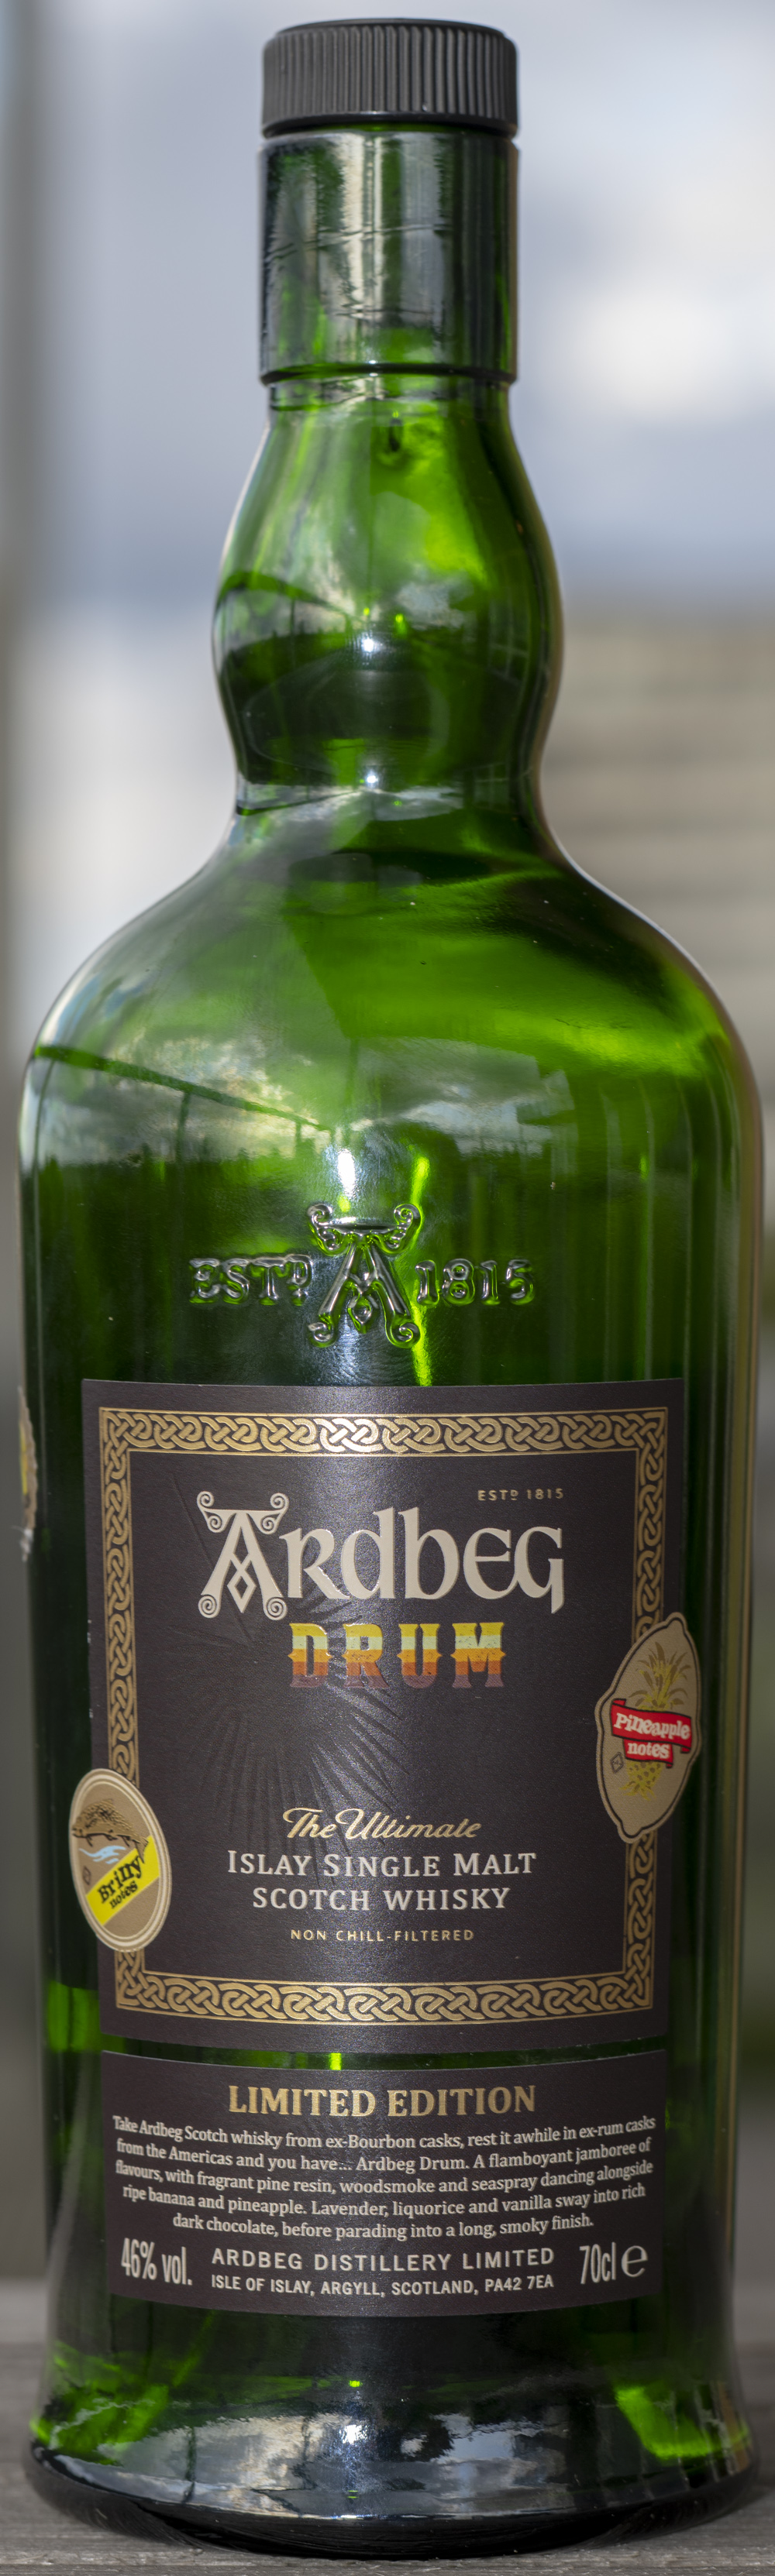 Billede: PHC_1847 - Ardbeg Drum - bottle front.jpg